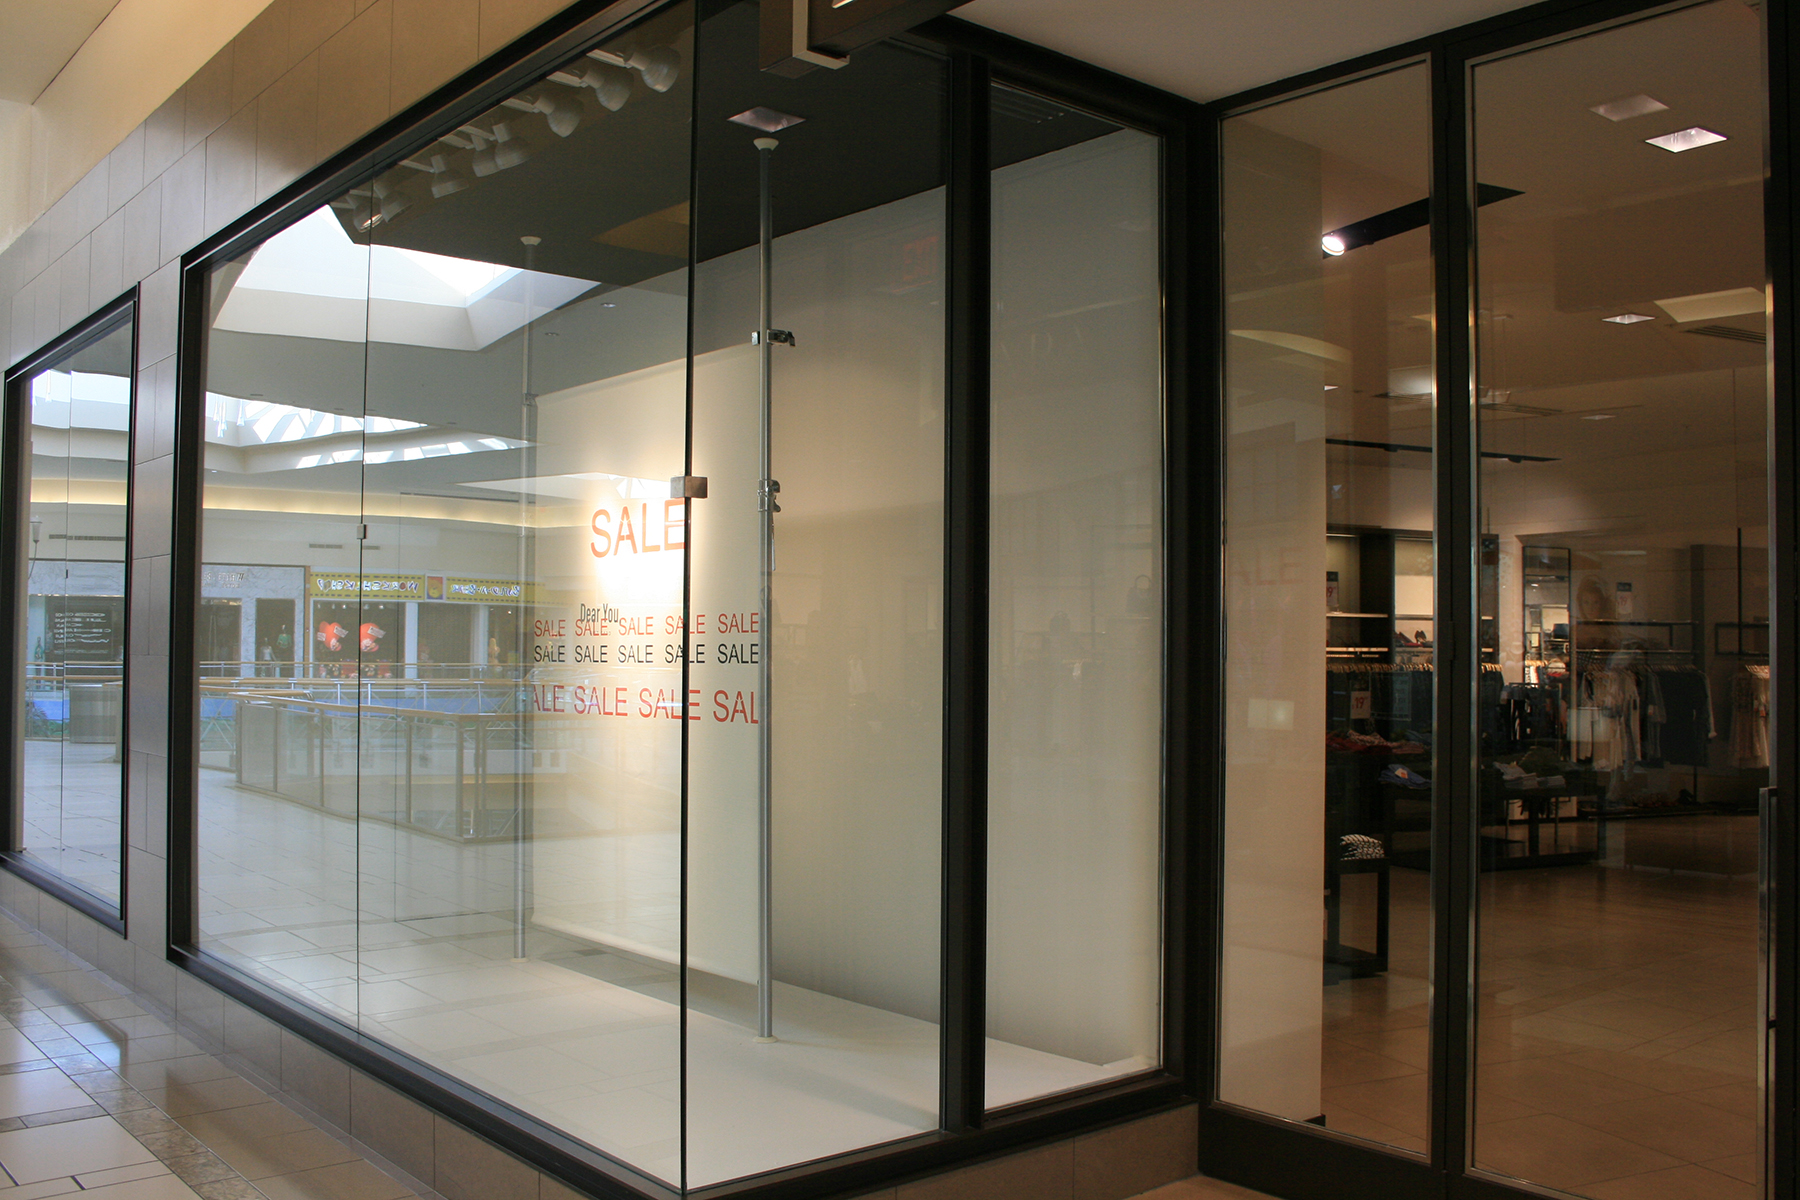 Frameless glass storefront door - Buy Now